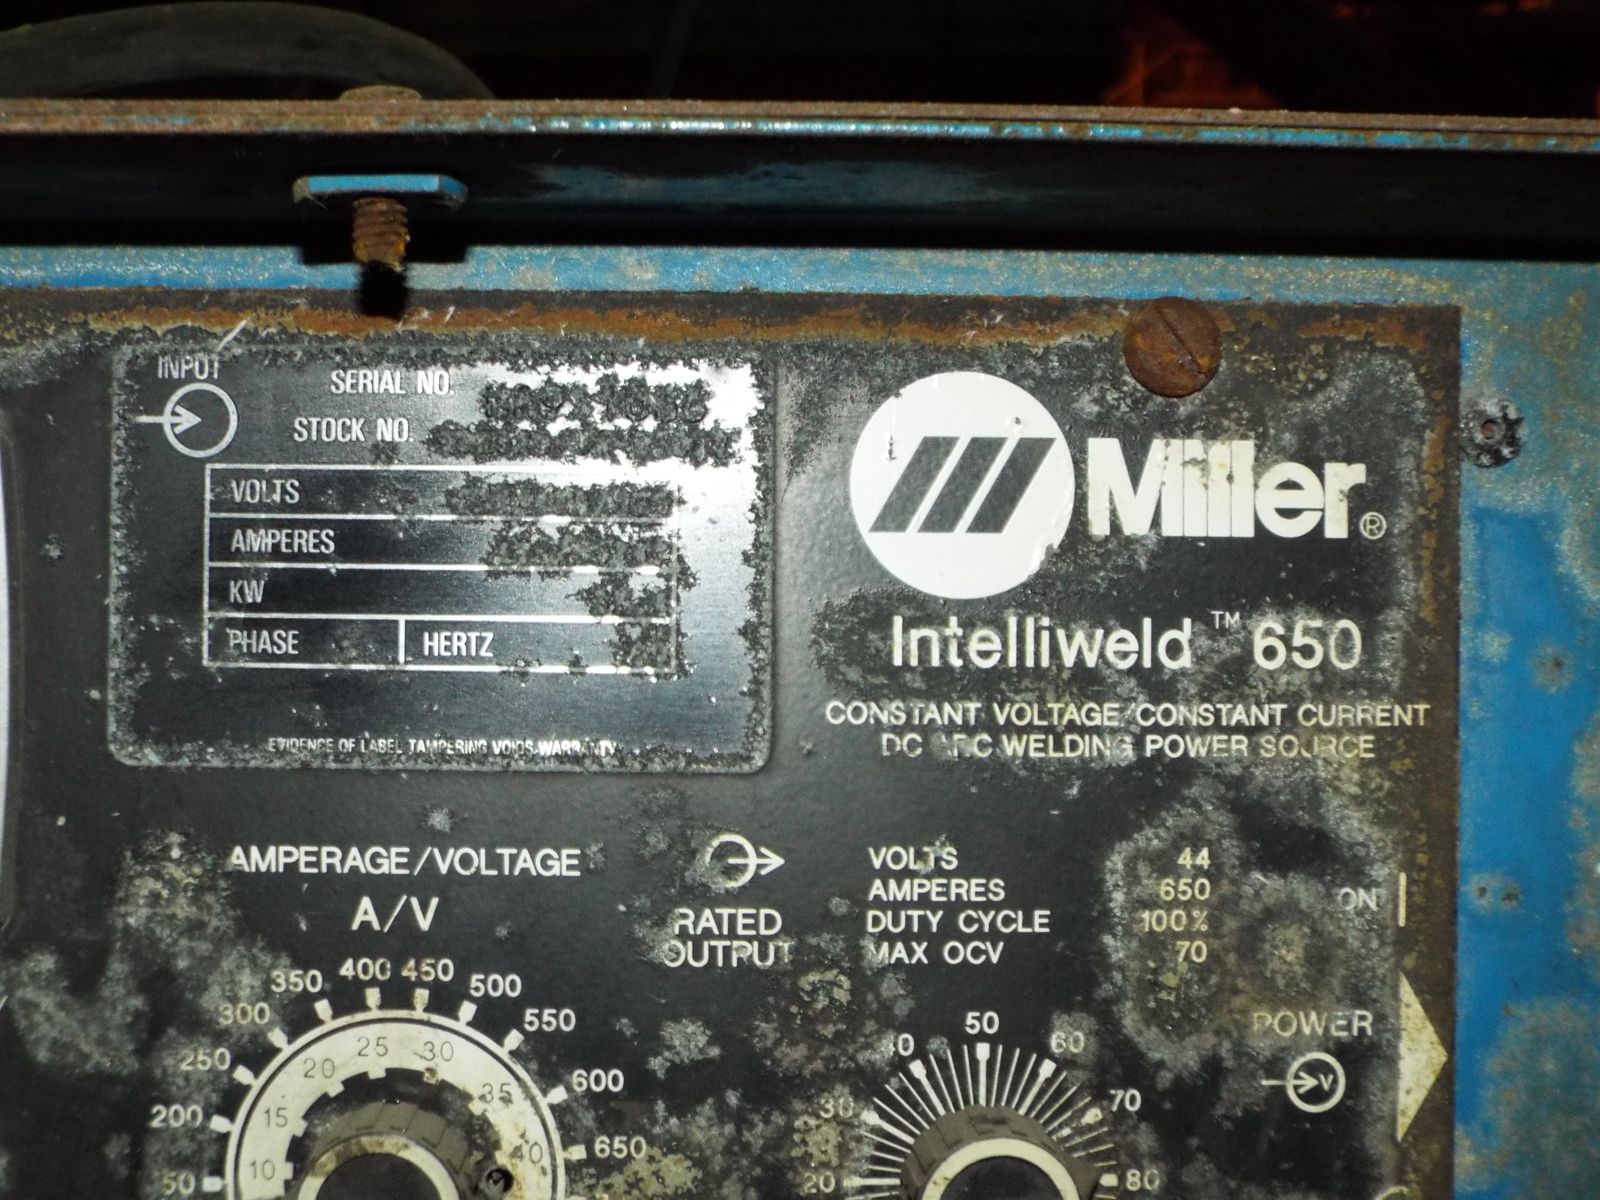 MILLER INTELLIWELD 650 WELDING POWER SOURCE WITH CABLES, S/N: N/A - Image 3 of 3